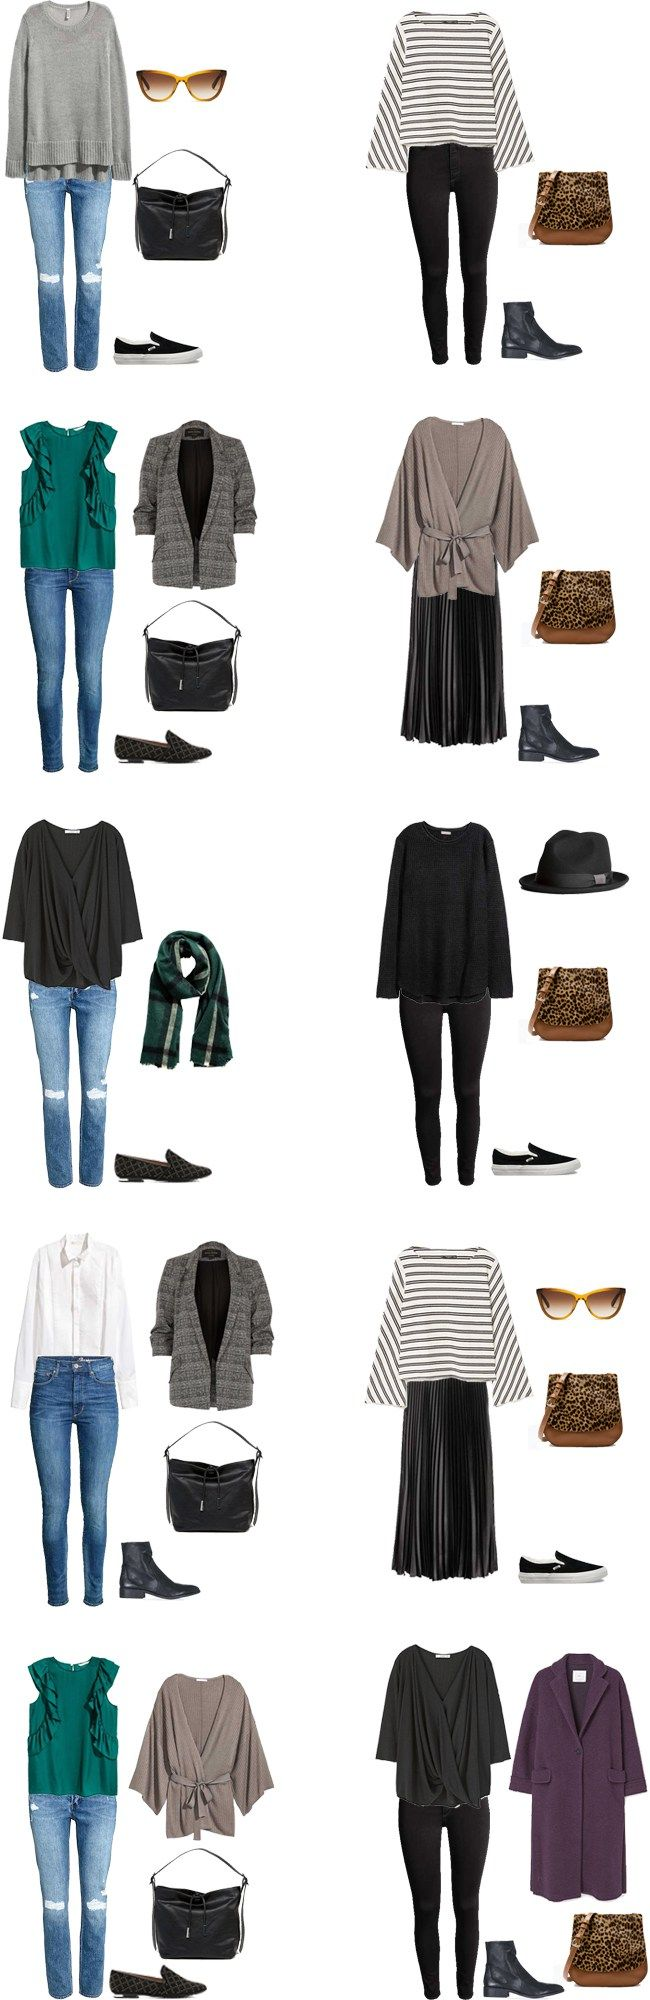 What to Wear in Washington DC Outfit Options 1-10 #packinglight #travelwardrobe #travellight #travel #traveltips